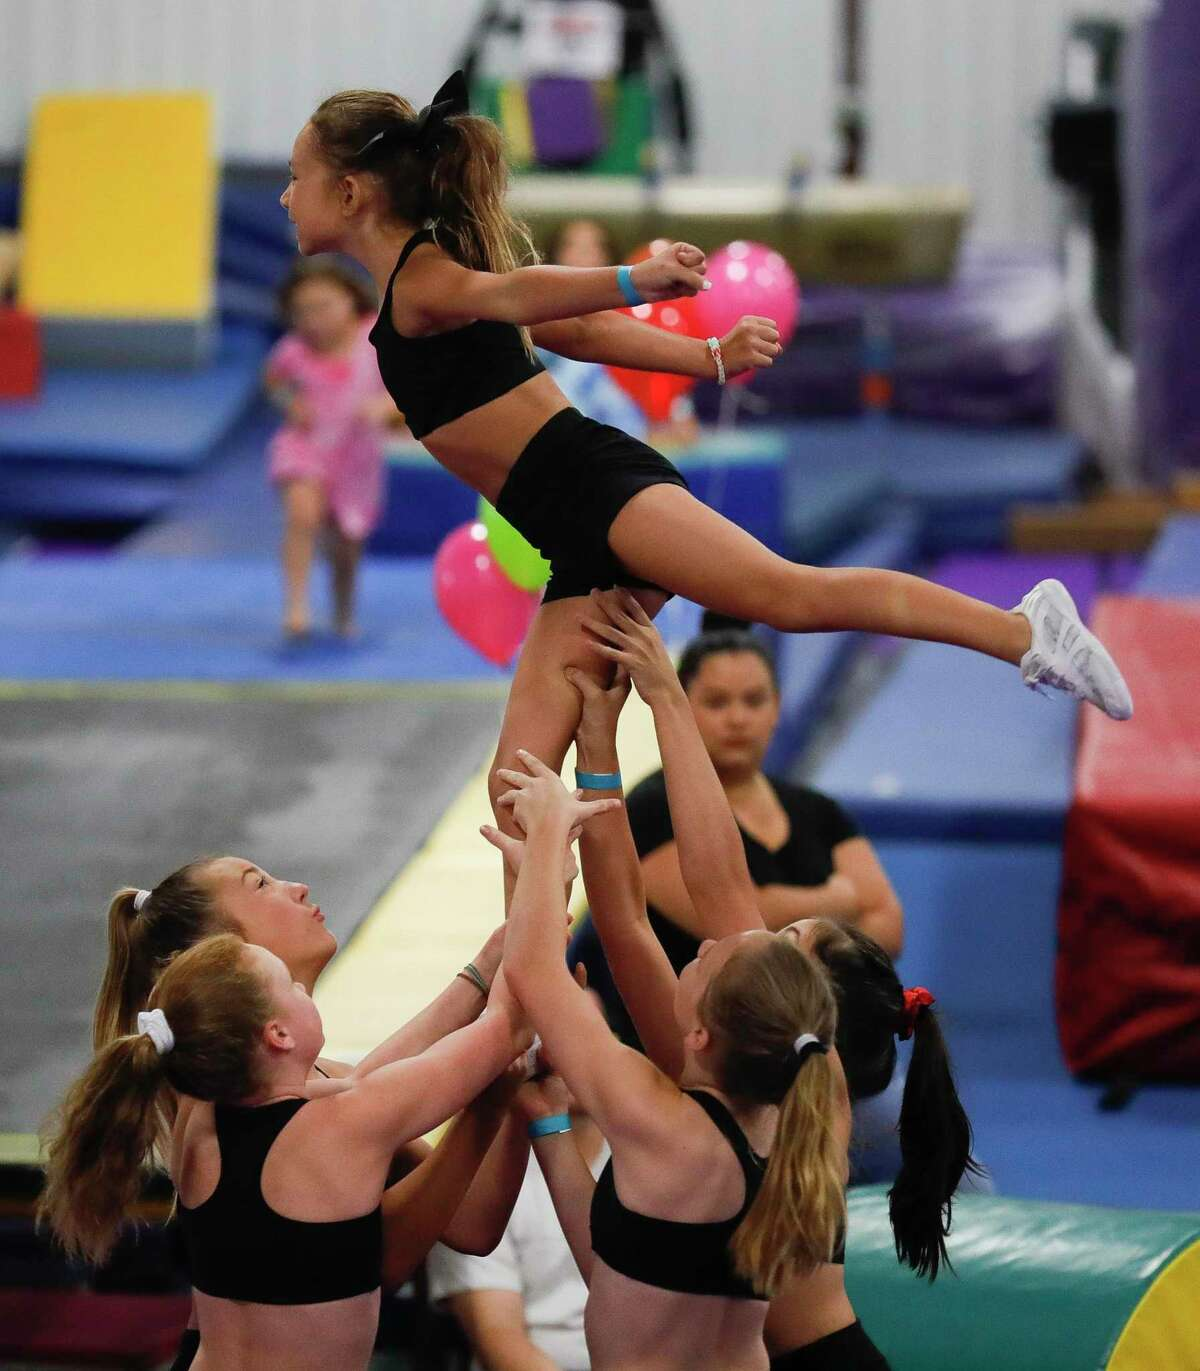 Linette Garris is held up by her cheerleader teammates as they perform during the Back 2 School Bash hosted by Majestic Gymnastics & Dance, Saturday, Aug. 1, 2020, in Willis. The free event featured performance by gymnastist, cheerleaders, food and games.